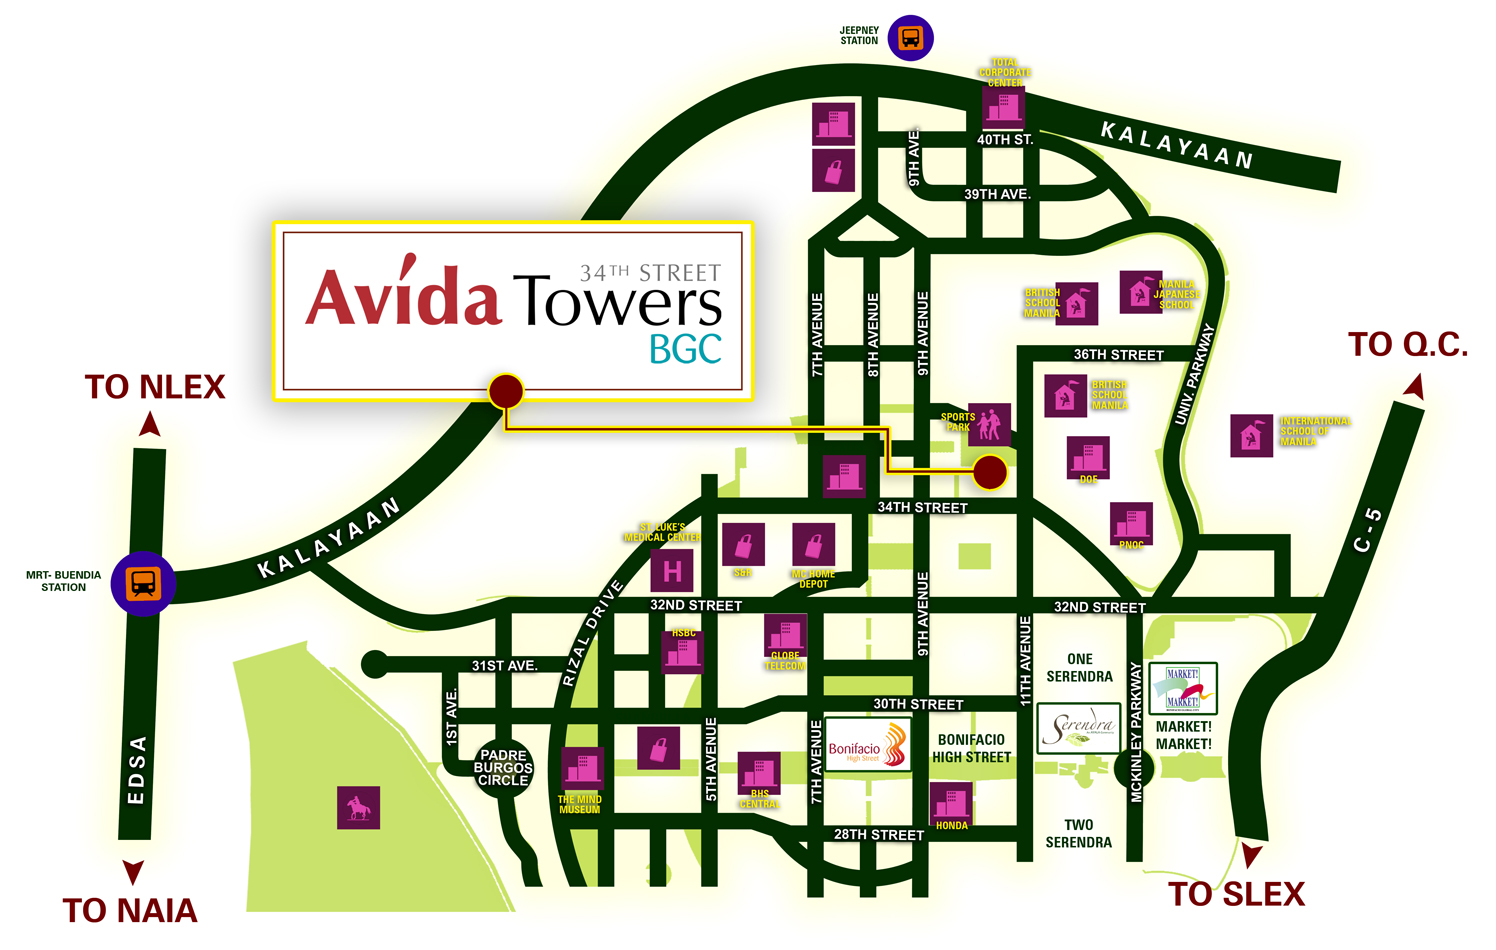 Avida_Towers_BGC_34th_Street_Location_Map.jpg